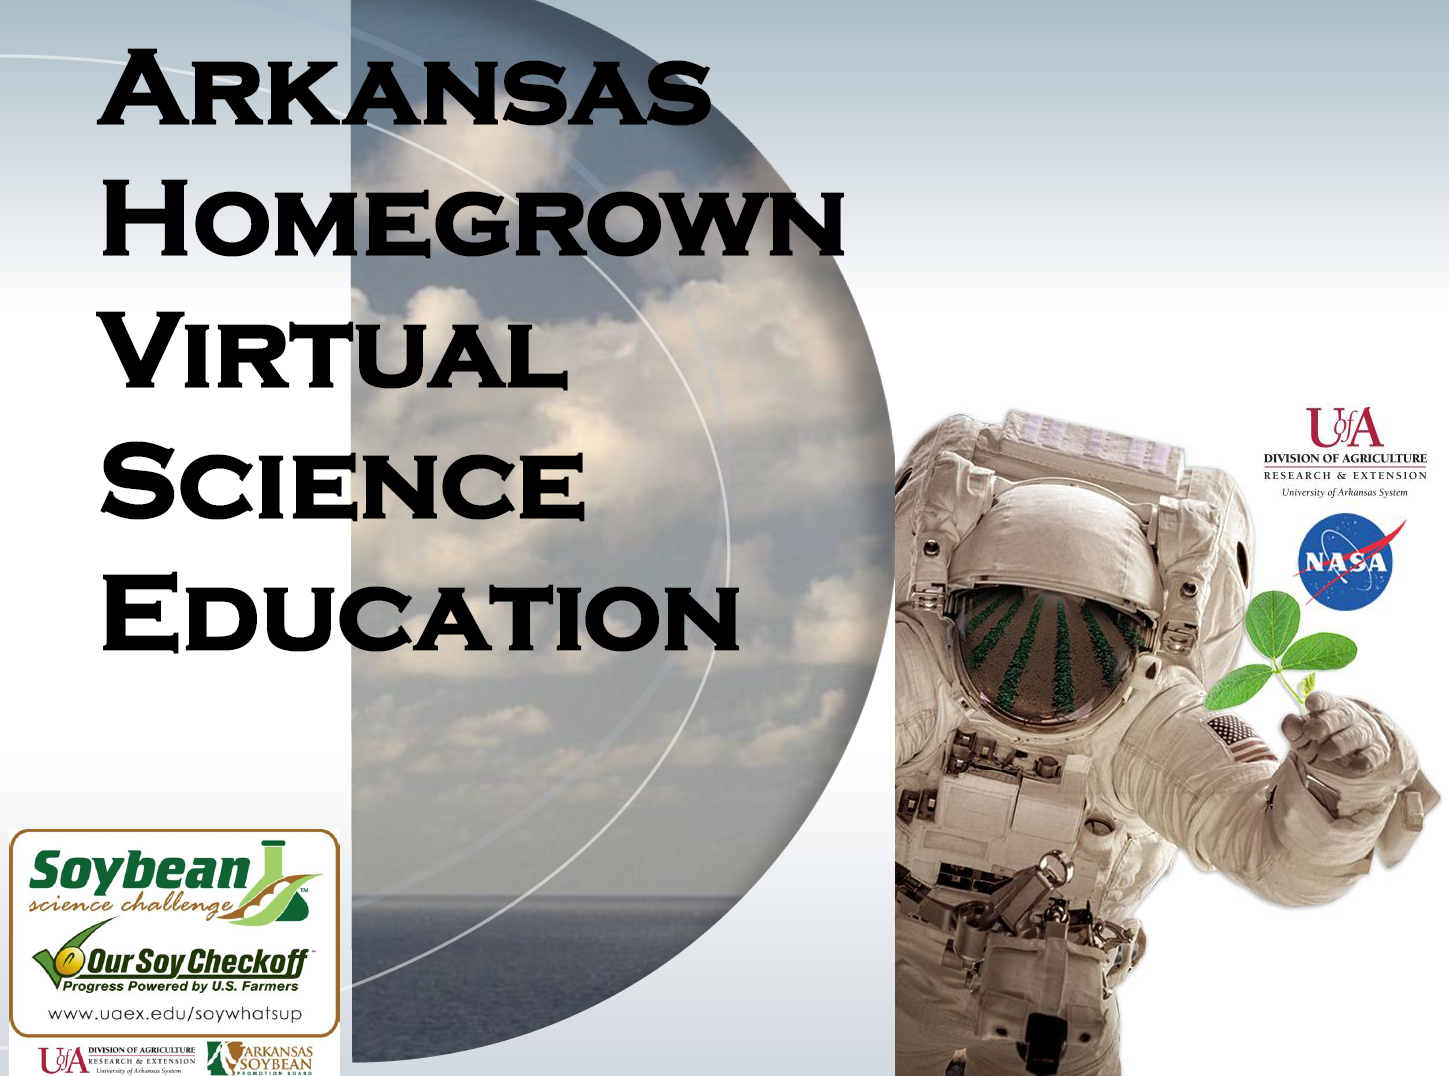 Arkansas Homegrown Virtual Science Education